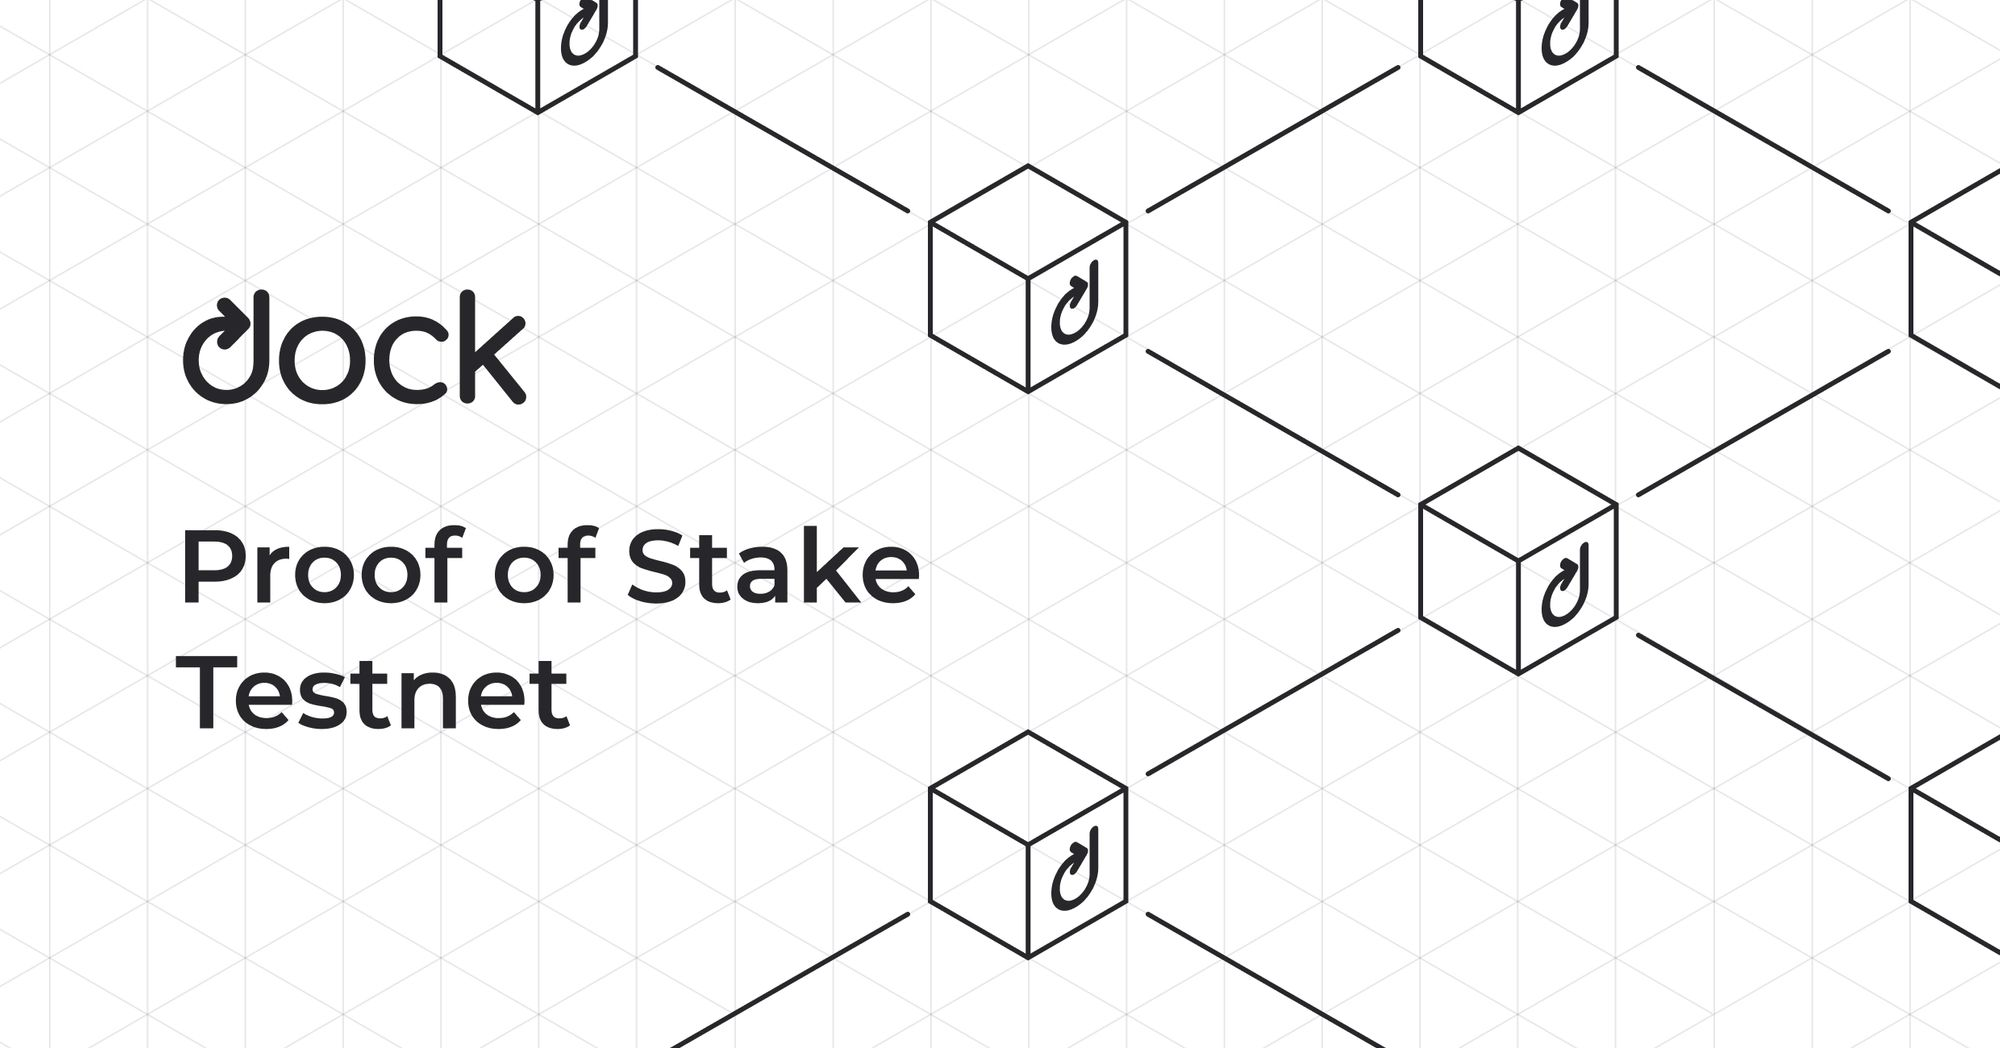 Dock's Proof of Stake Testnet Is Now Live